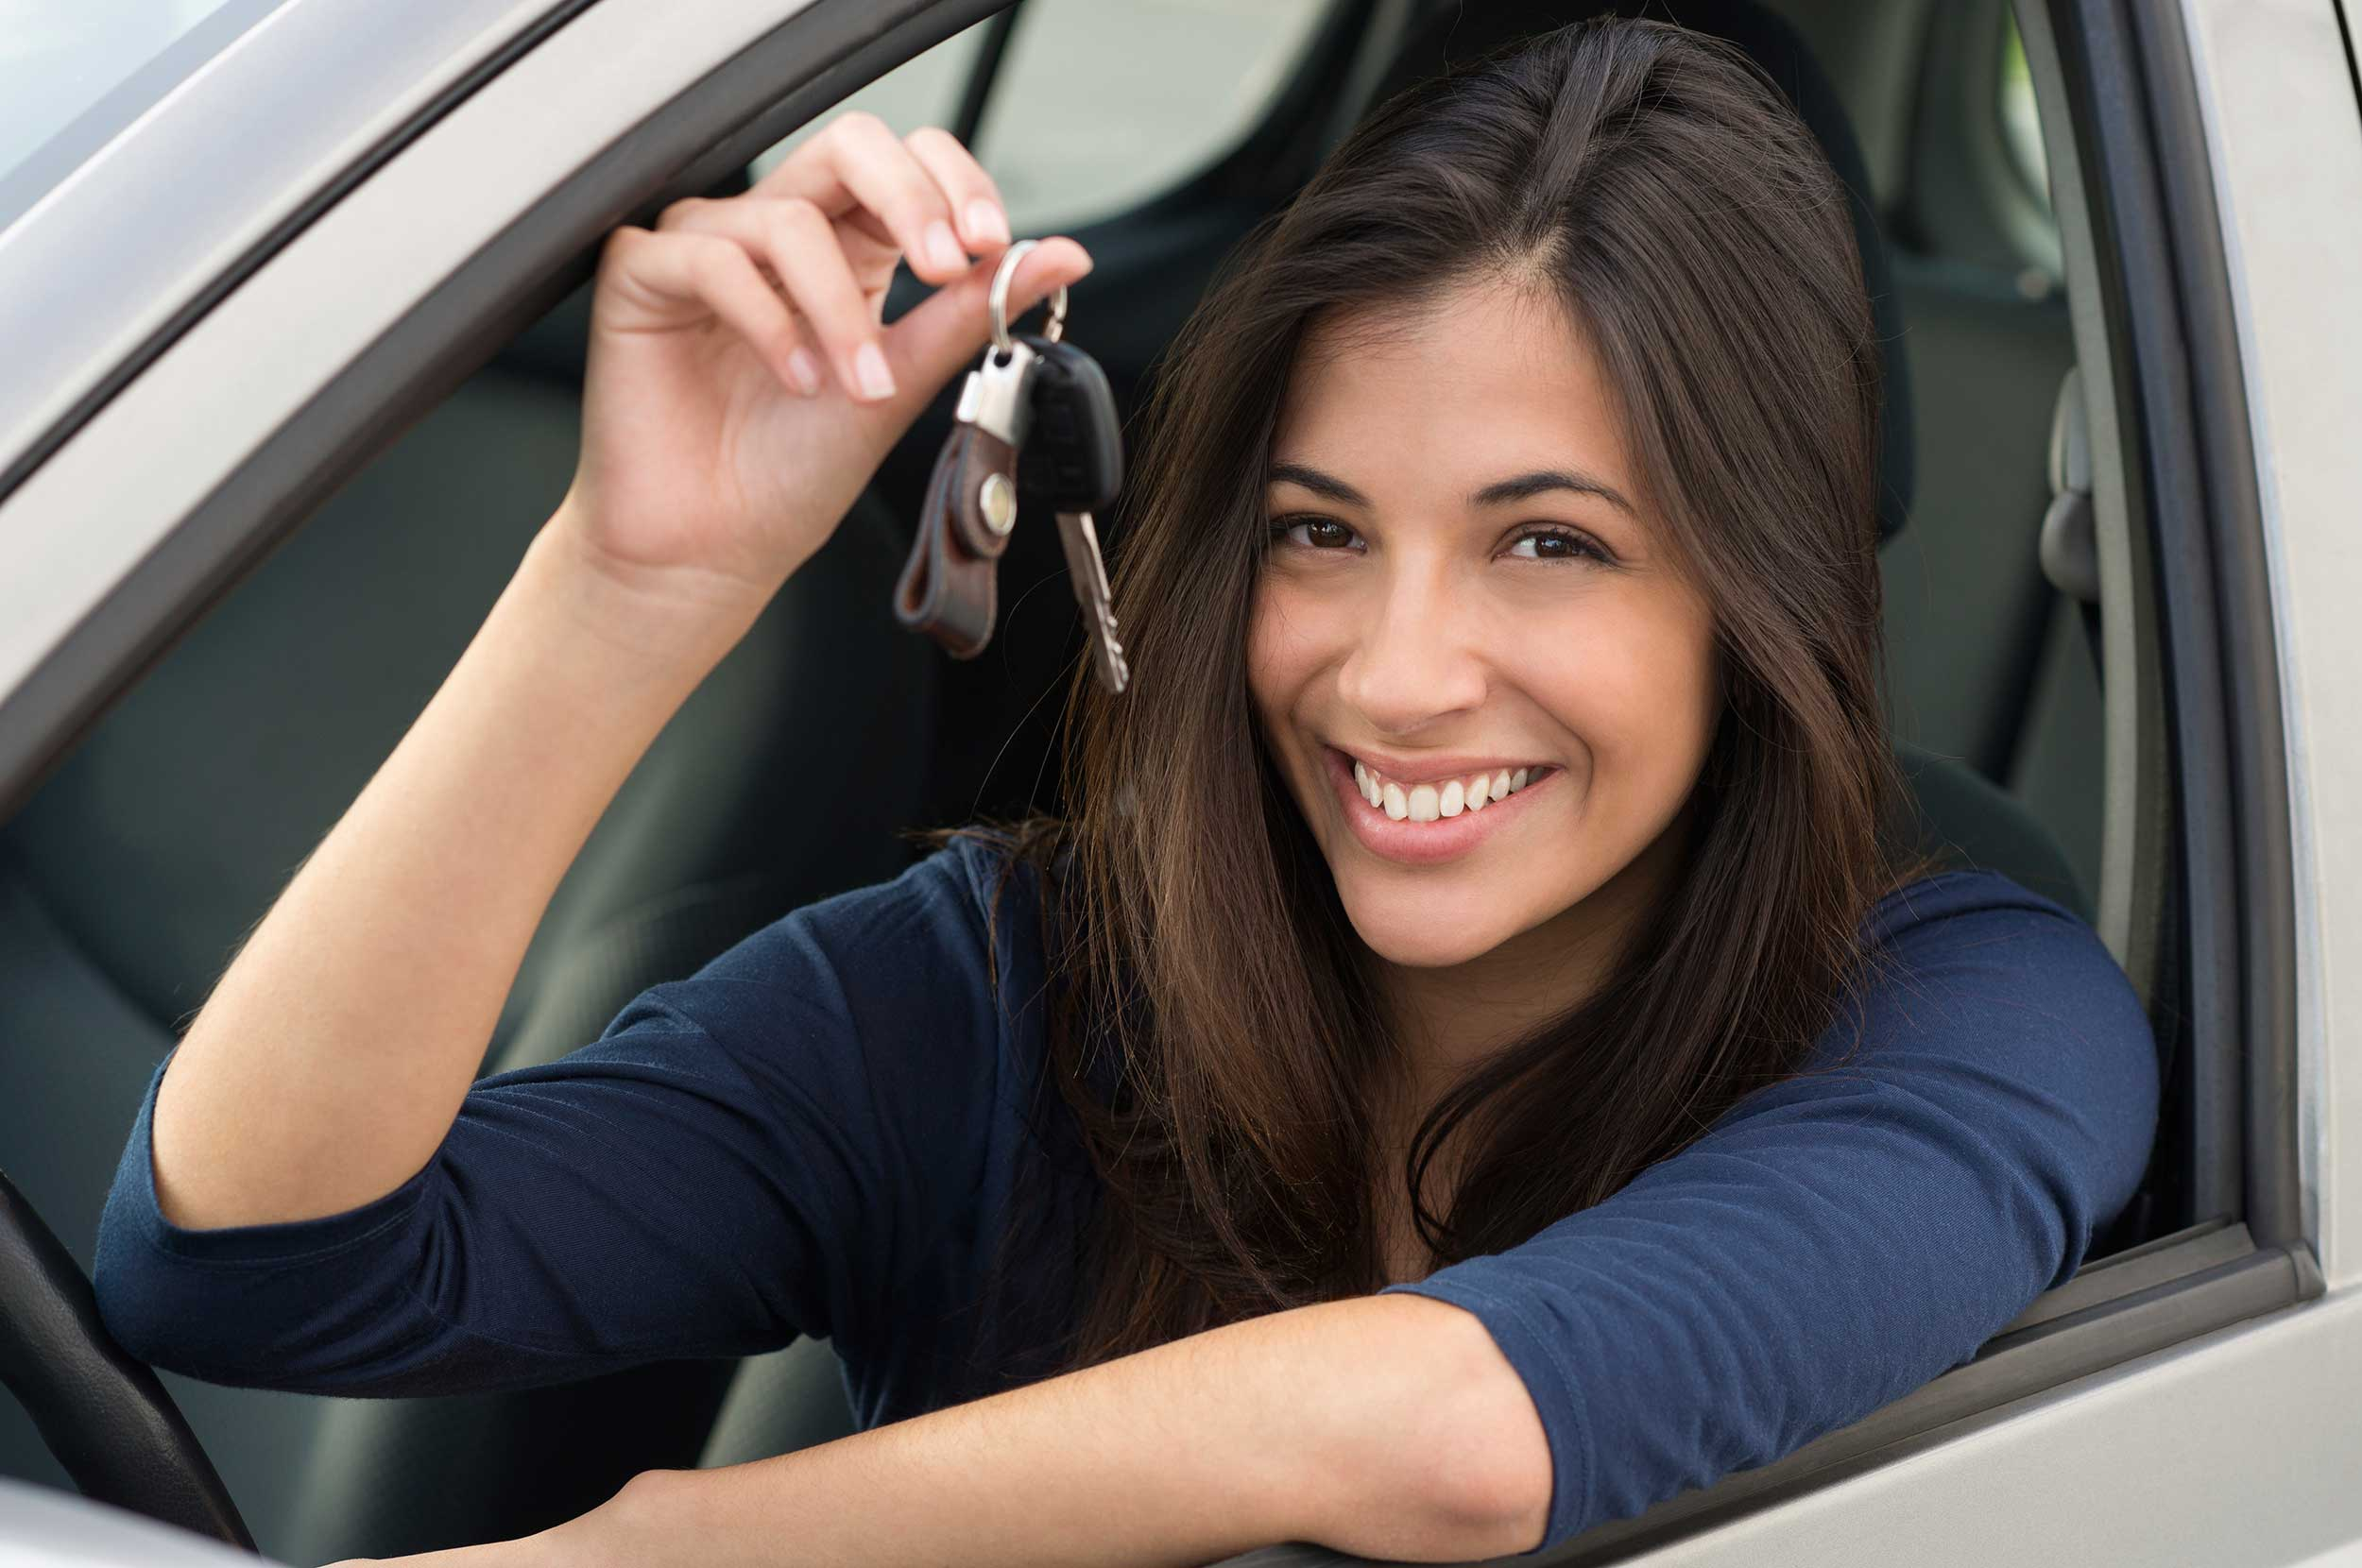 20-Year-Old-Girl-In-Car-Holding-Up-Keys